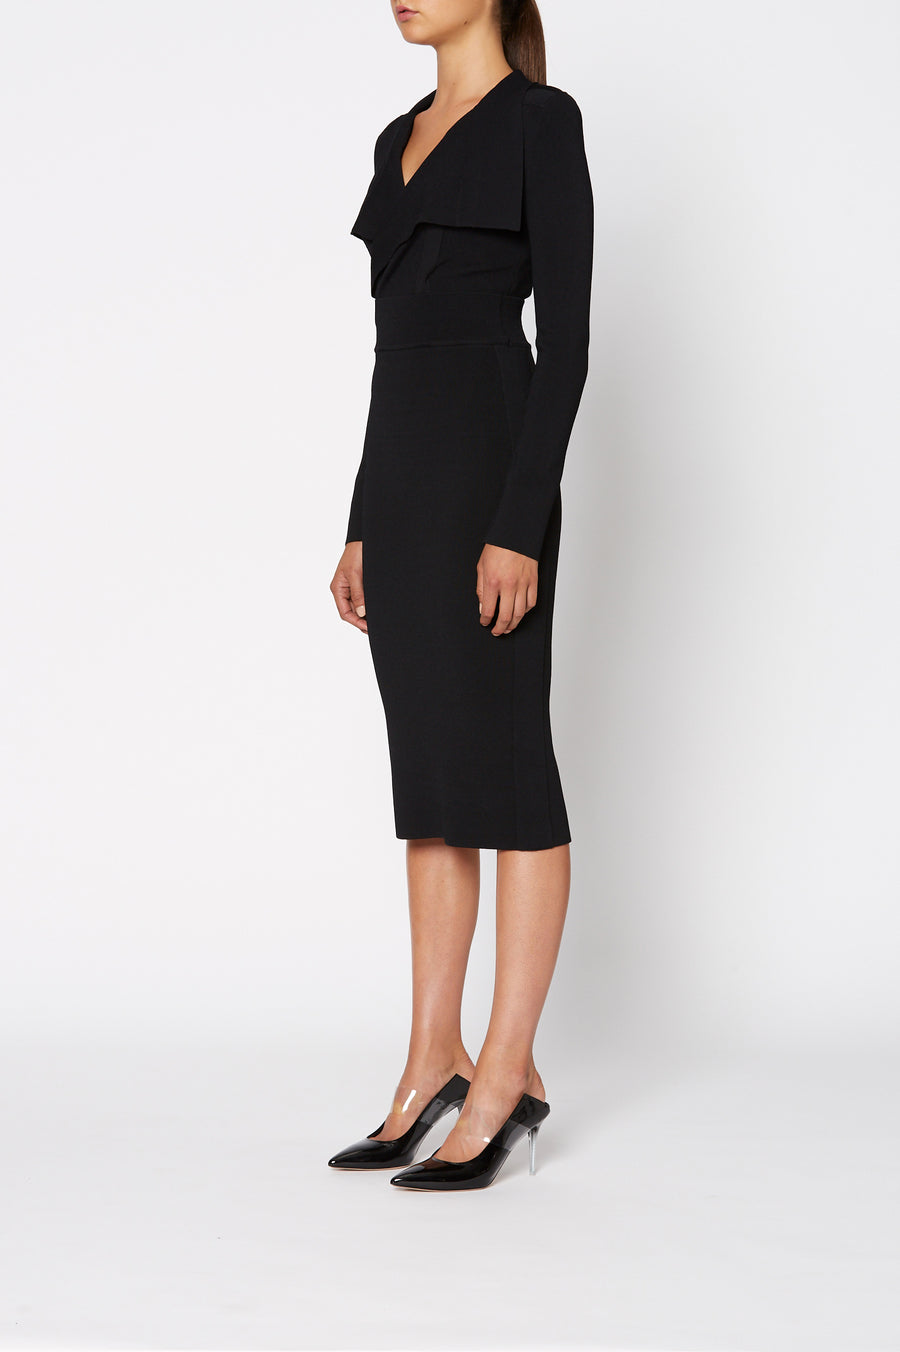 Crepe Knit Drape Front Dress, pointed collar, fitted bodice, shoulder pads, long sleeves, falls below the knee, color black.